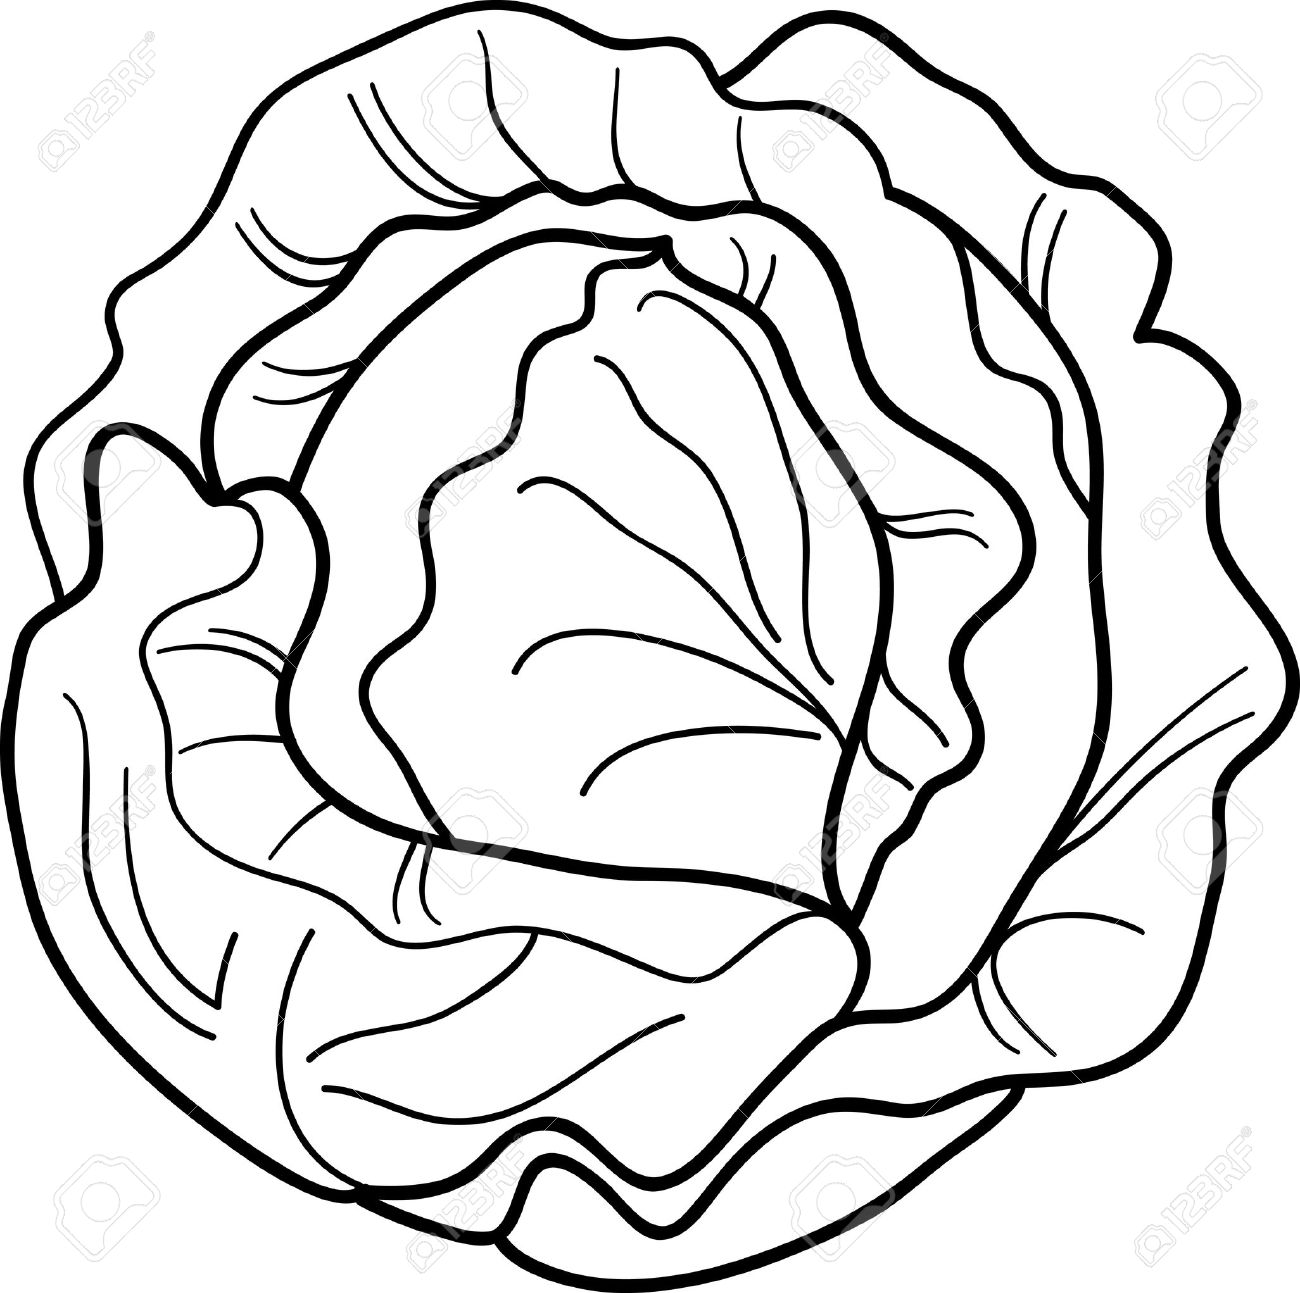 Cabbage clipart black and white Clipart Clipart Black Download Black